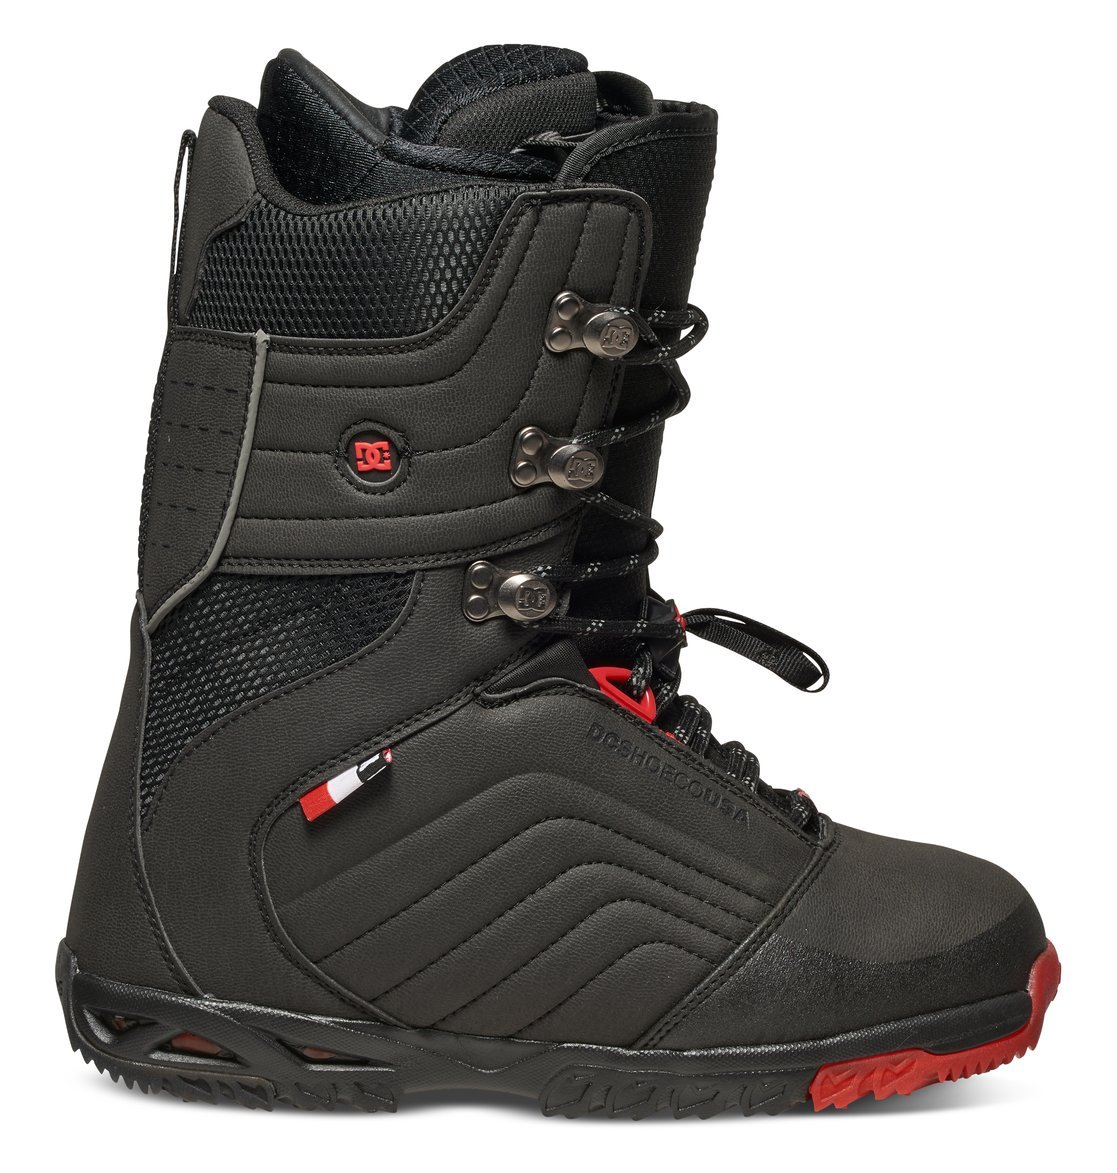 DC DC Scendent Snowboard Boots